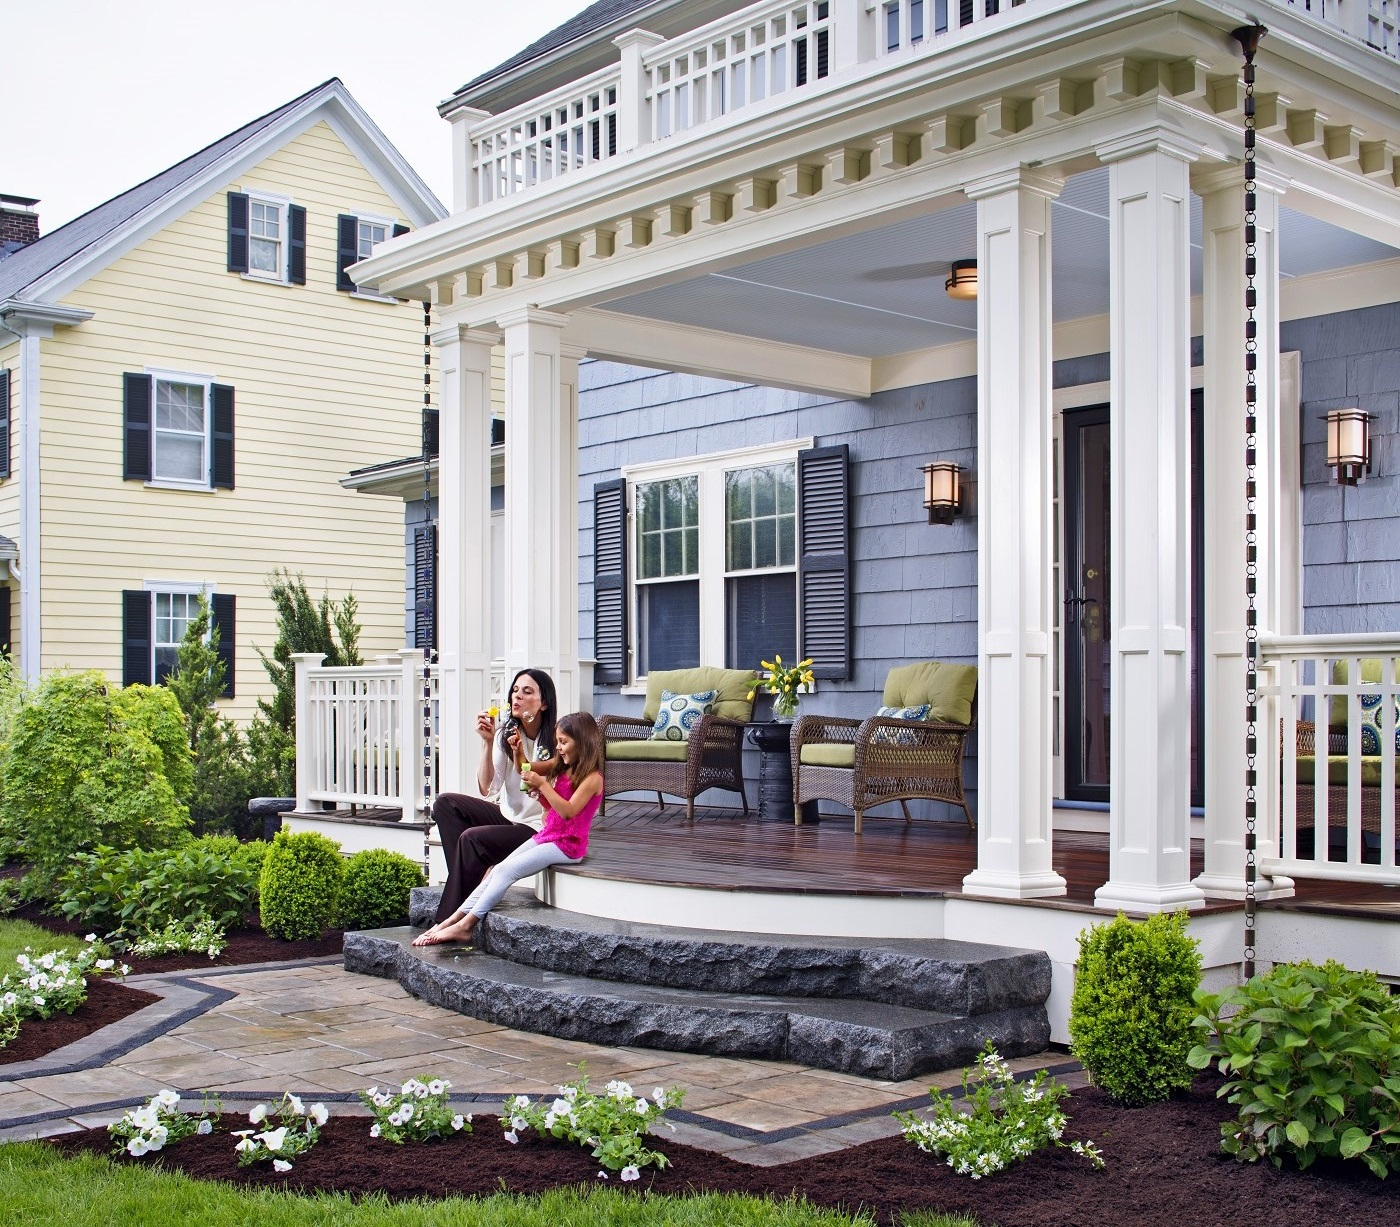 Isn't-it-time-you-considered-a-front-porch-for-your-Nashville-home?